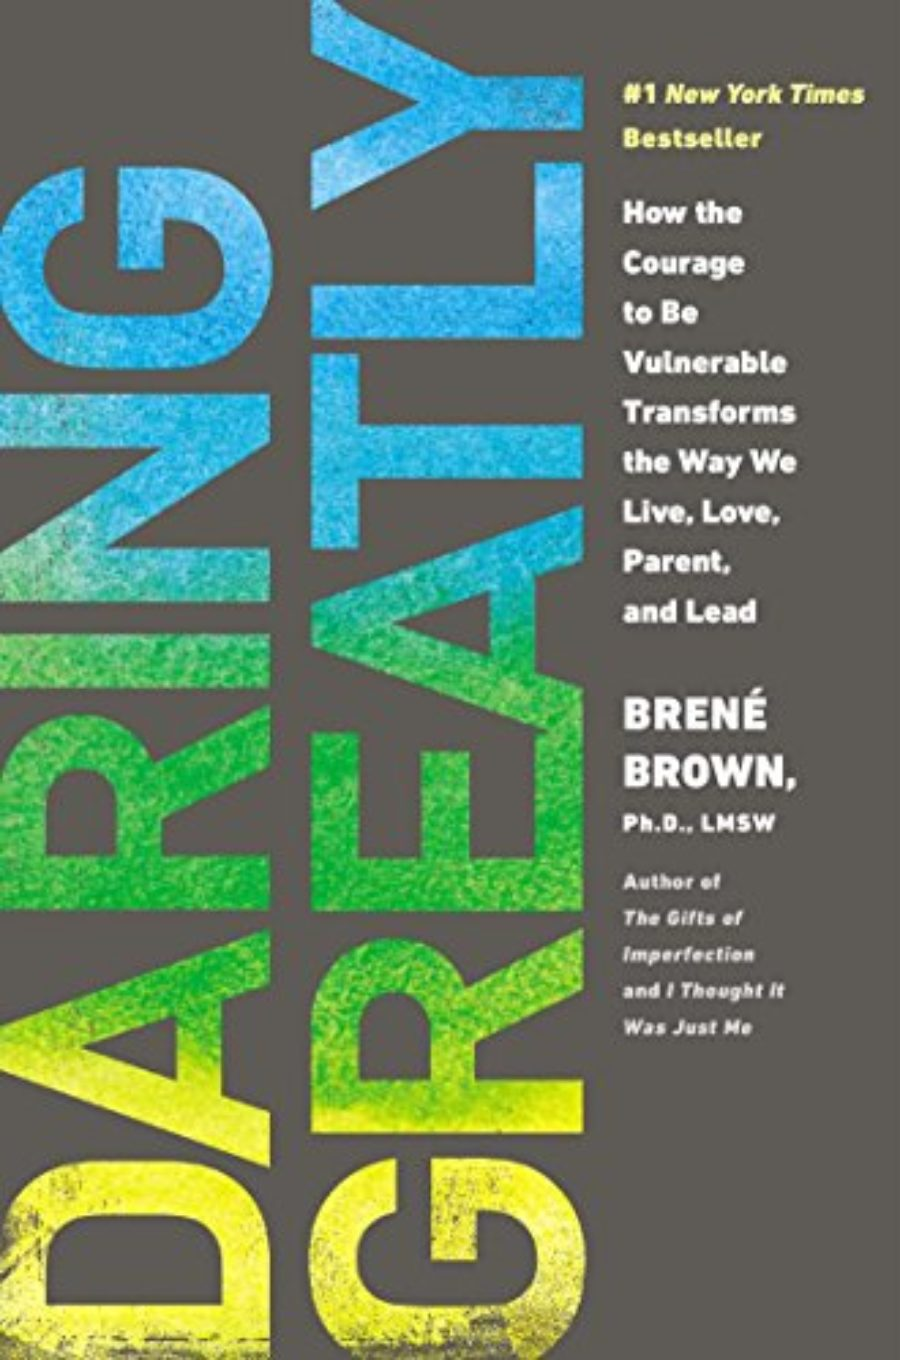 Cover of Daring Greatly: How the Courage to Be Vulnerable Transforms the Way We Live, Love, Parent, and Lead